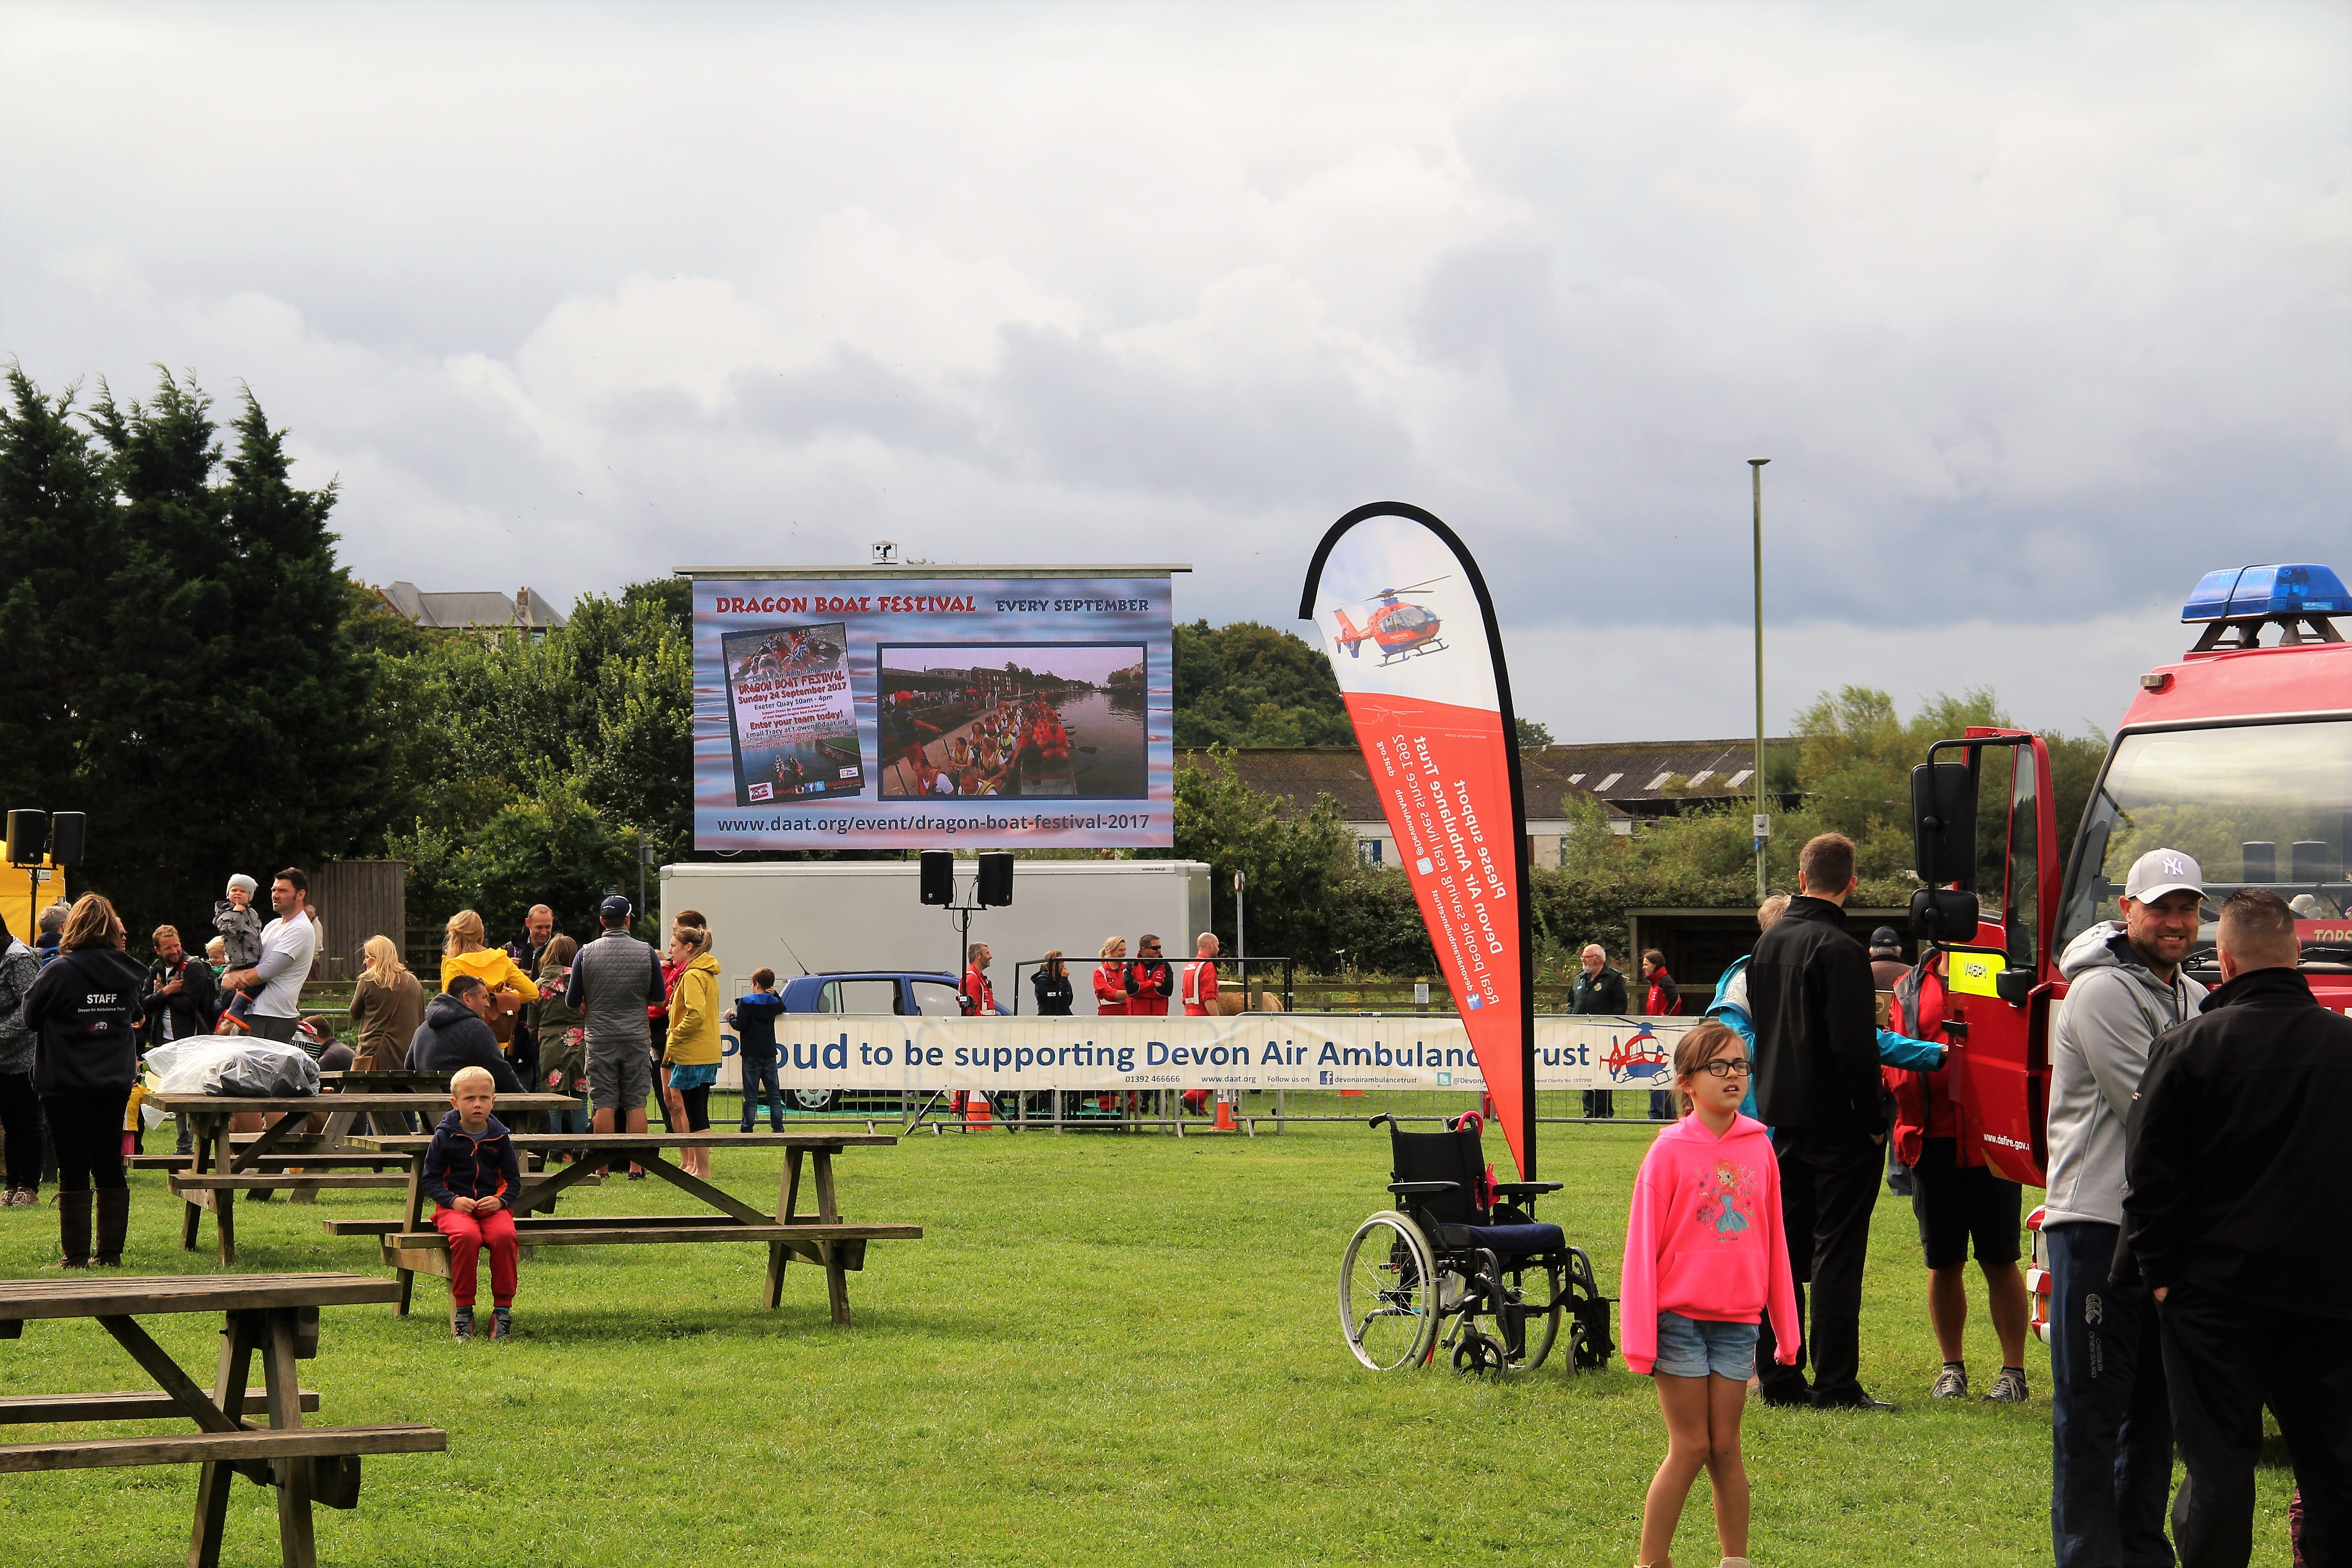 LED screen outdoor event